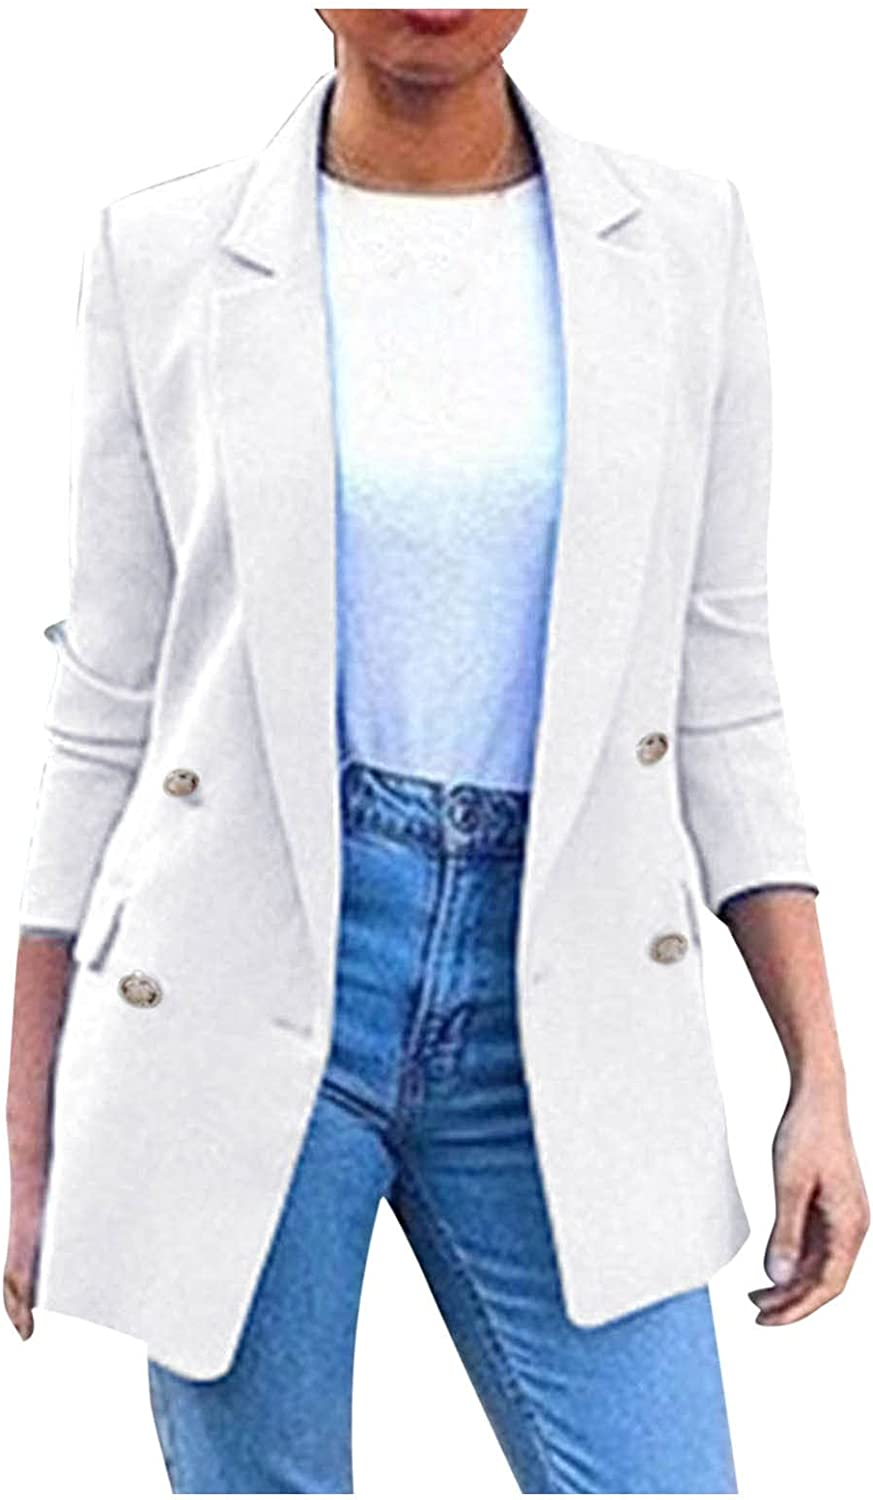 Changeshopping Cardigan for Women,Autumn Winter Solid Splice Long Sleeve Pocket Outerwear Loose Cardigan Jacket